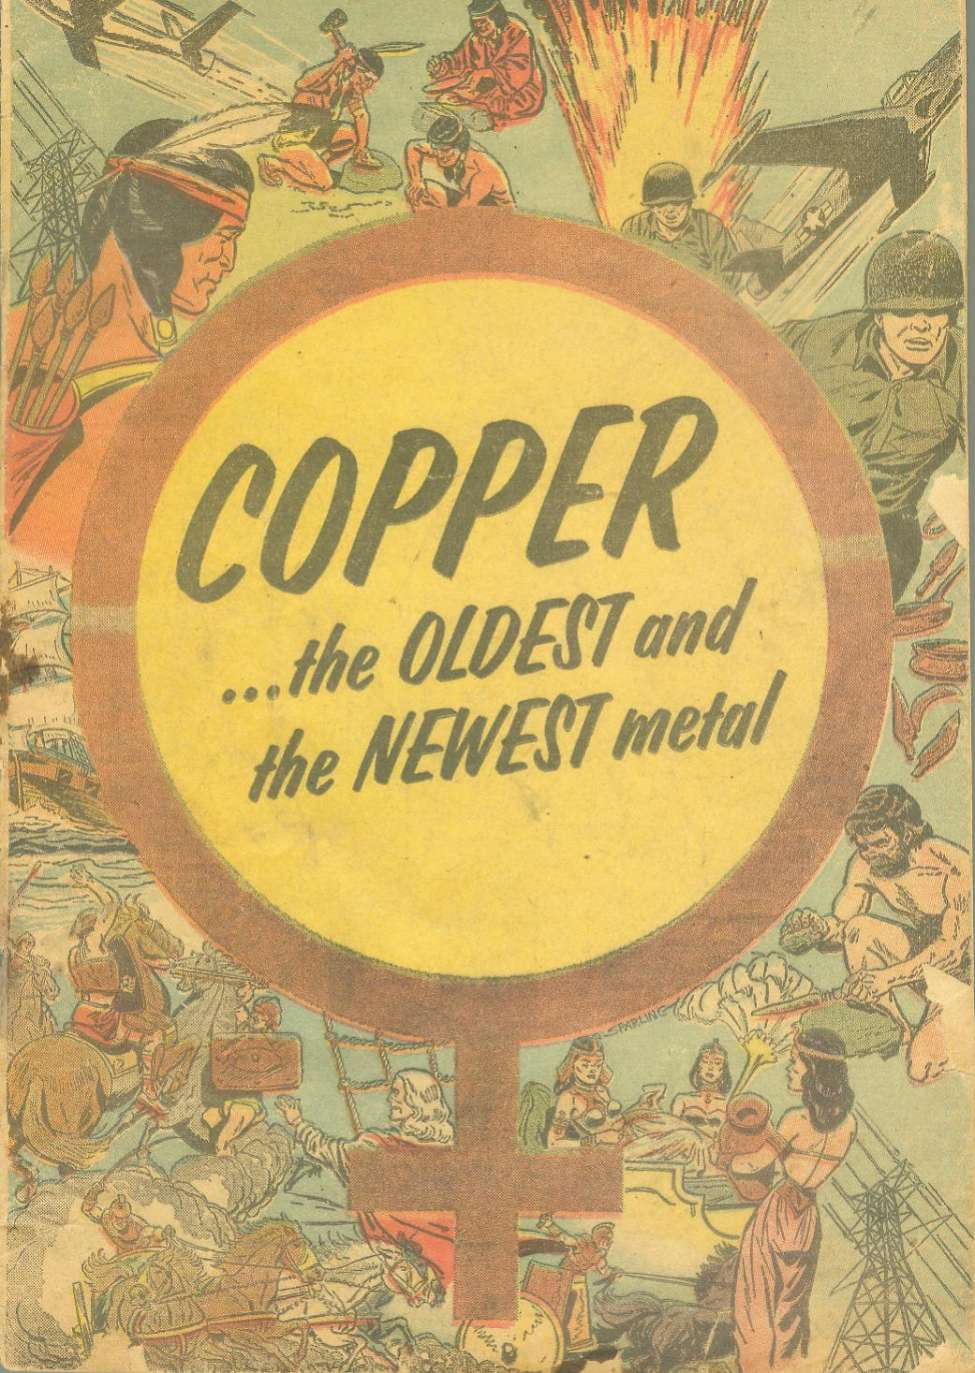 Comic Book Cover For Copper...the Oldest and the Newest Metal [nn]